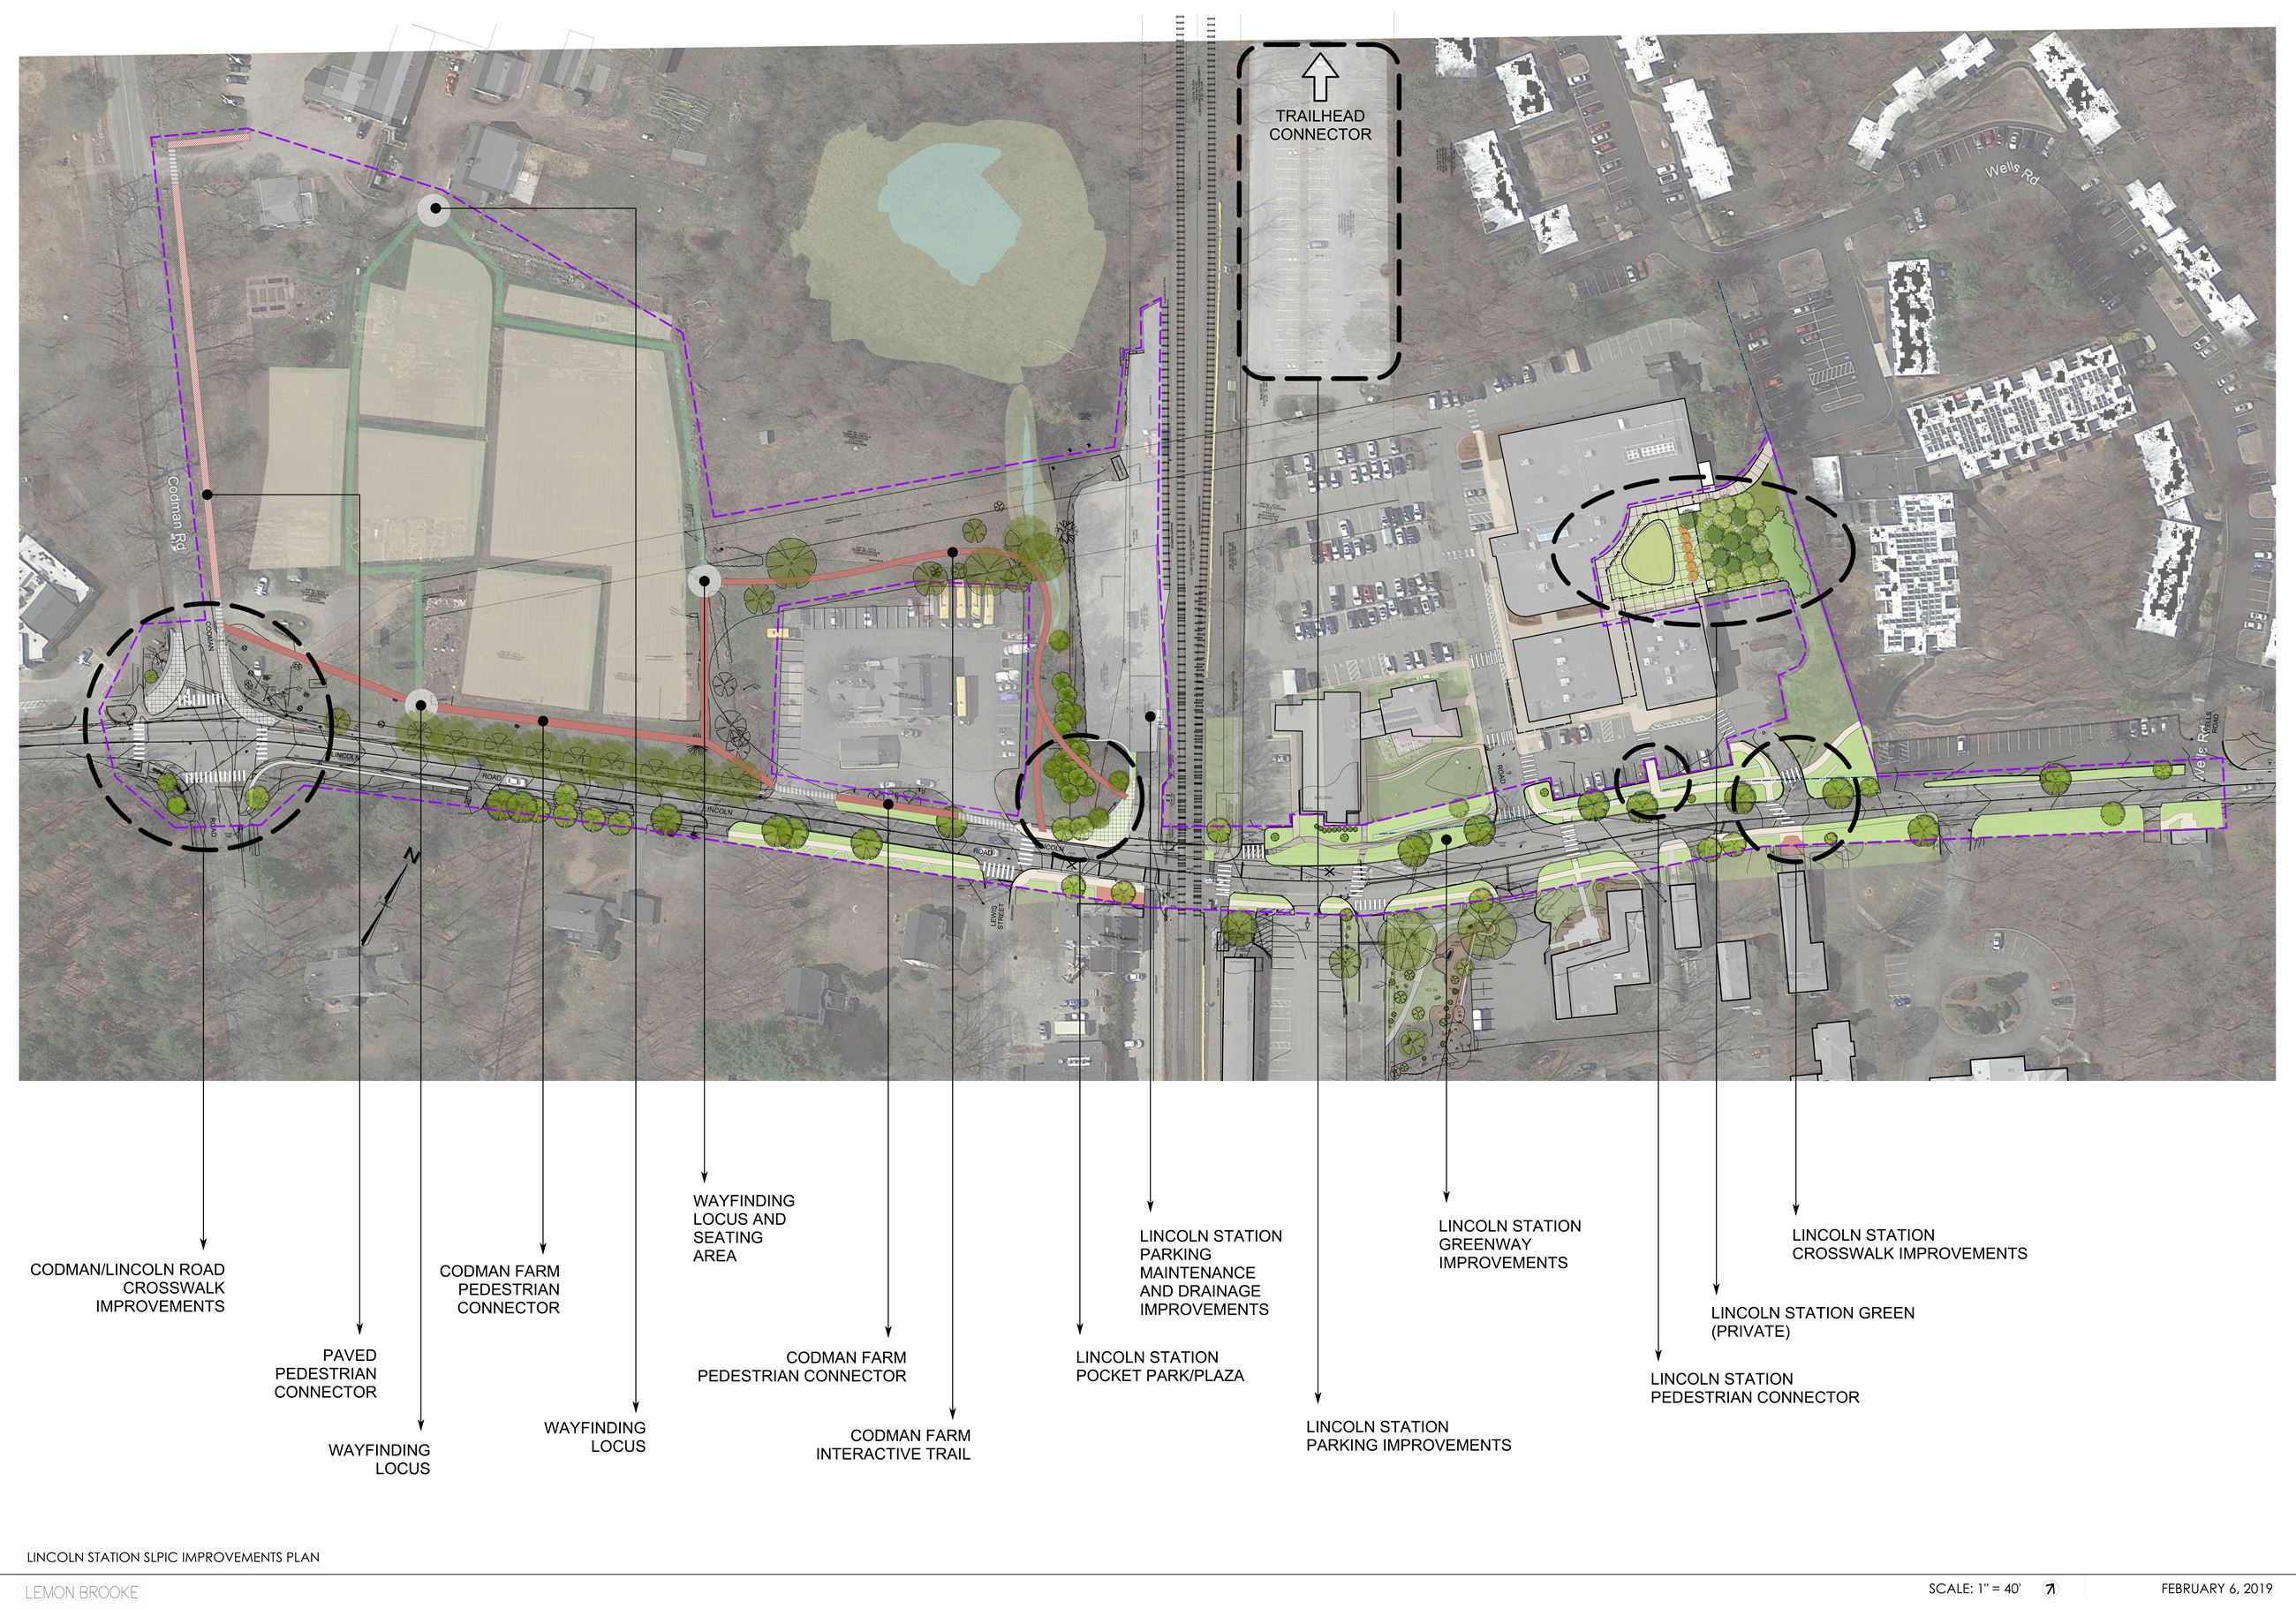 Lincoln Station SLPIC Improvement Plan